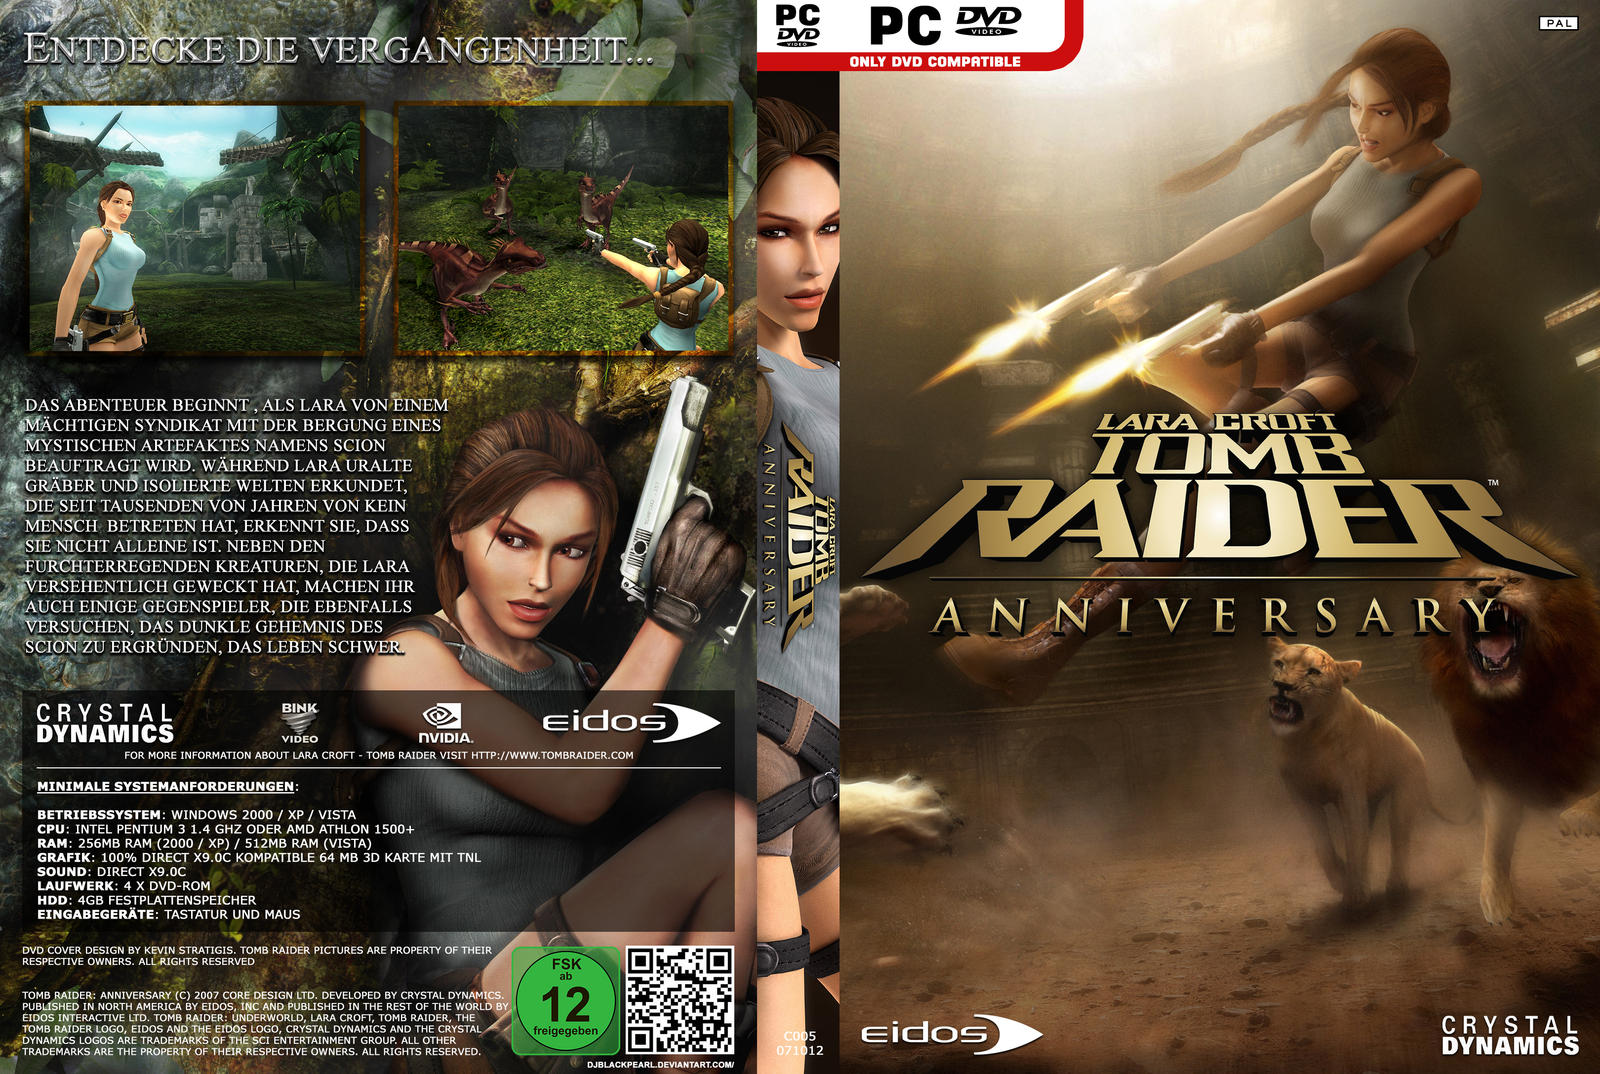 Tomb raider anniversary nute patch nsfw scenes